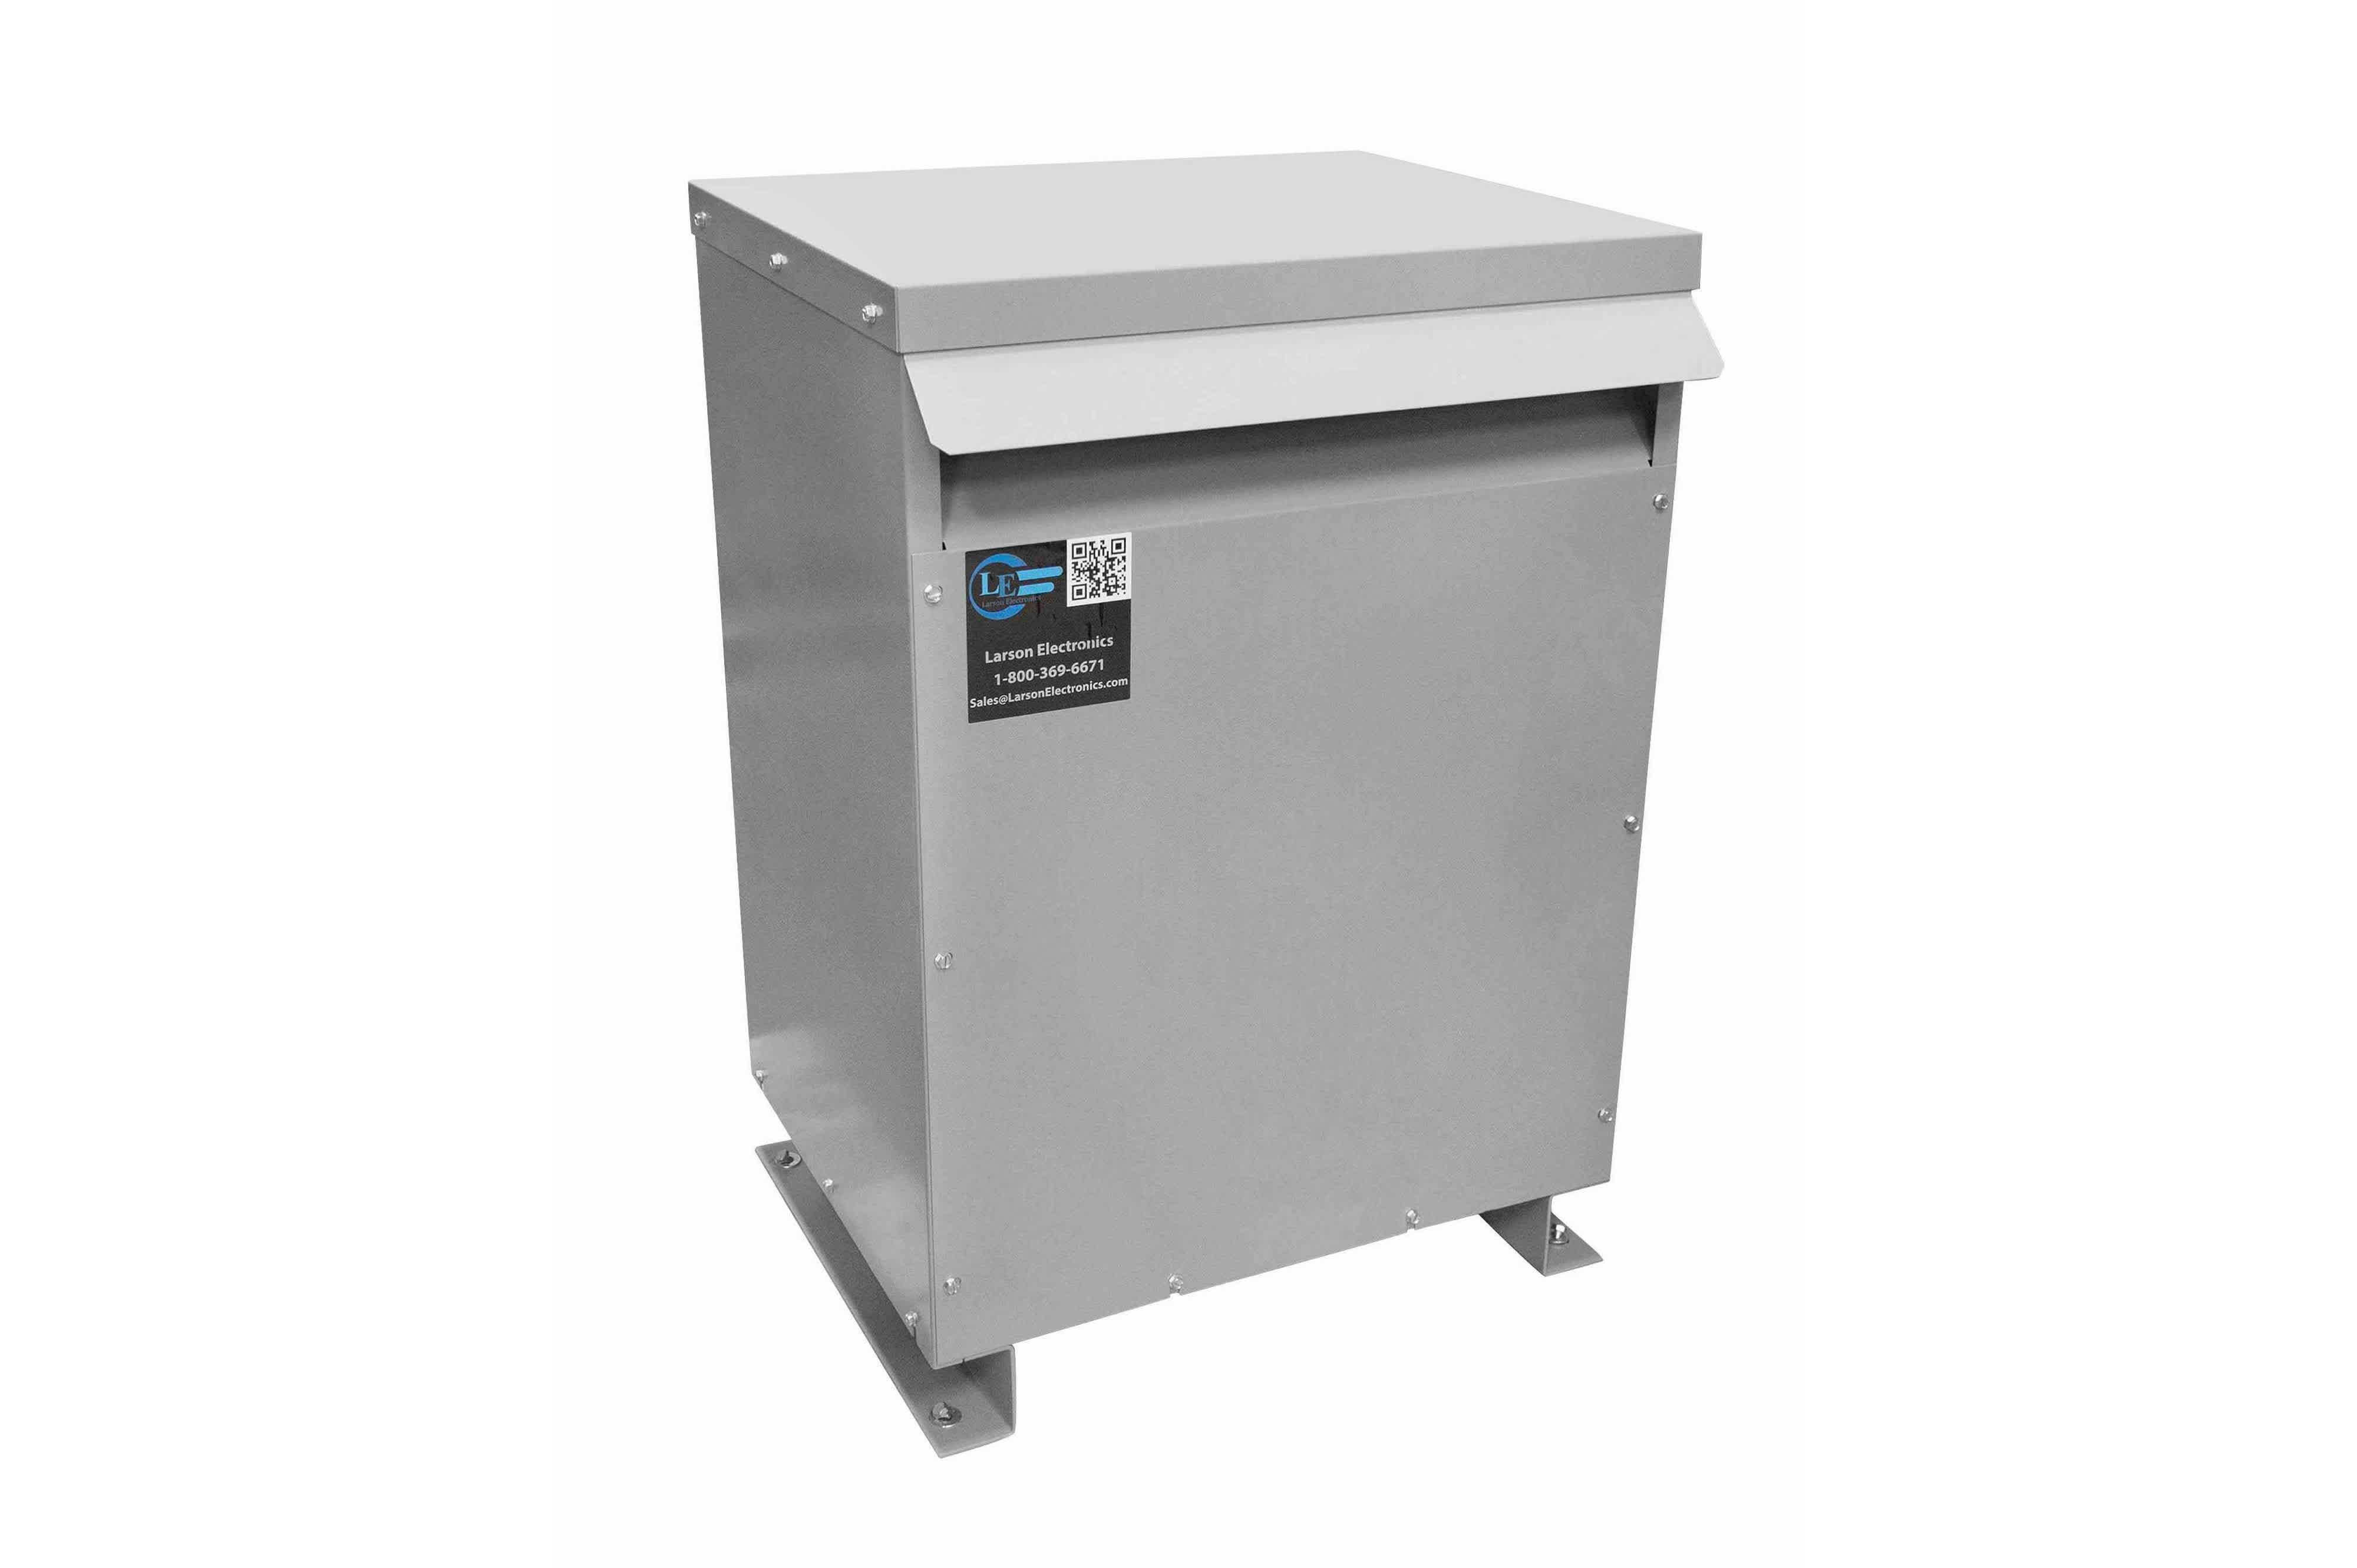 37.5 kVA 3PH Isolation Transformer, 400V Delta Primary, 240 Delta Secondary, N3R, Ventilated, 60 Hz